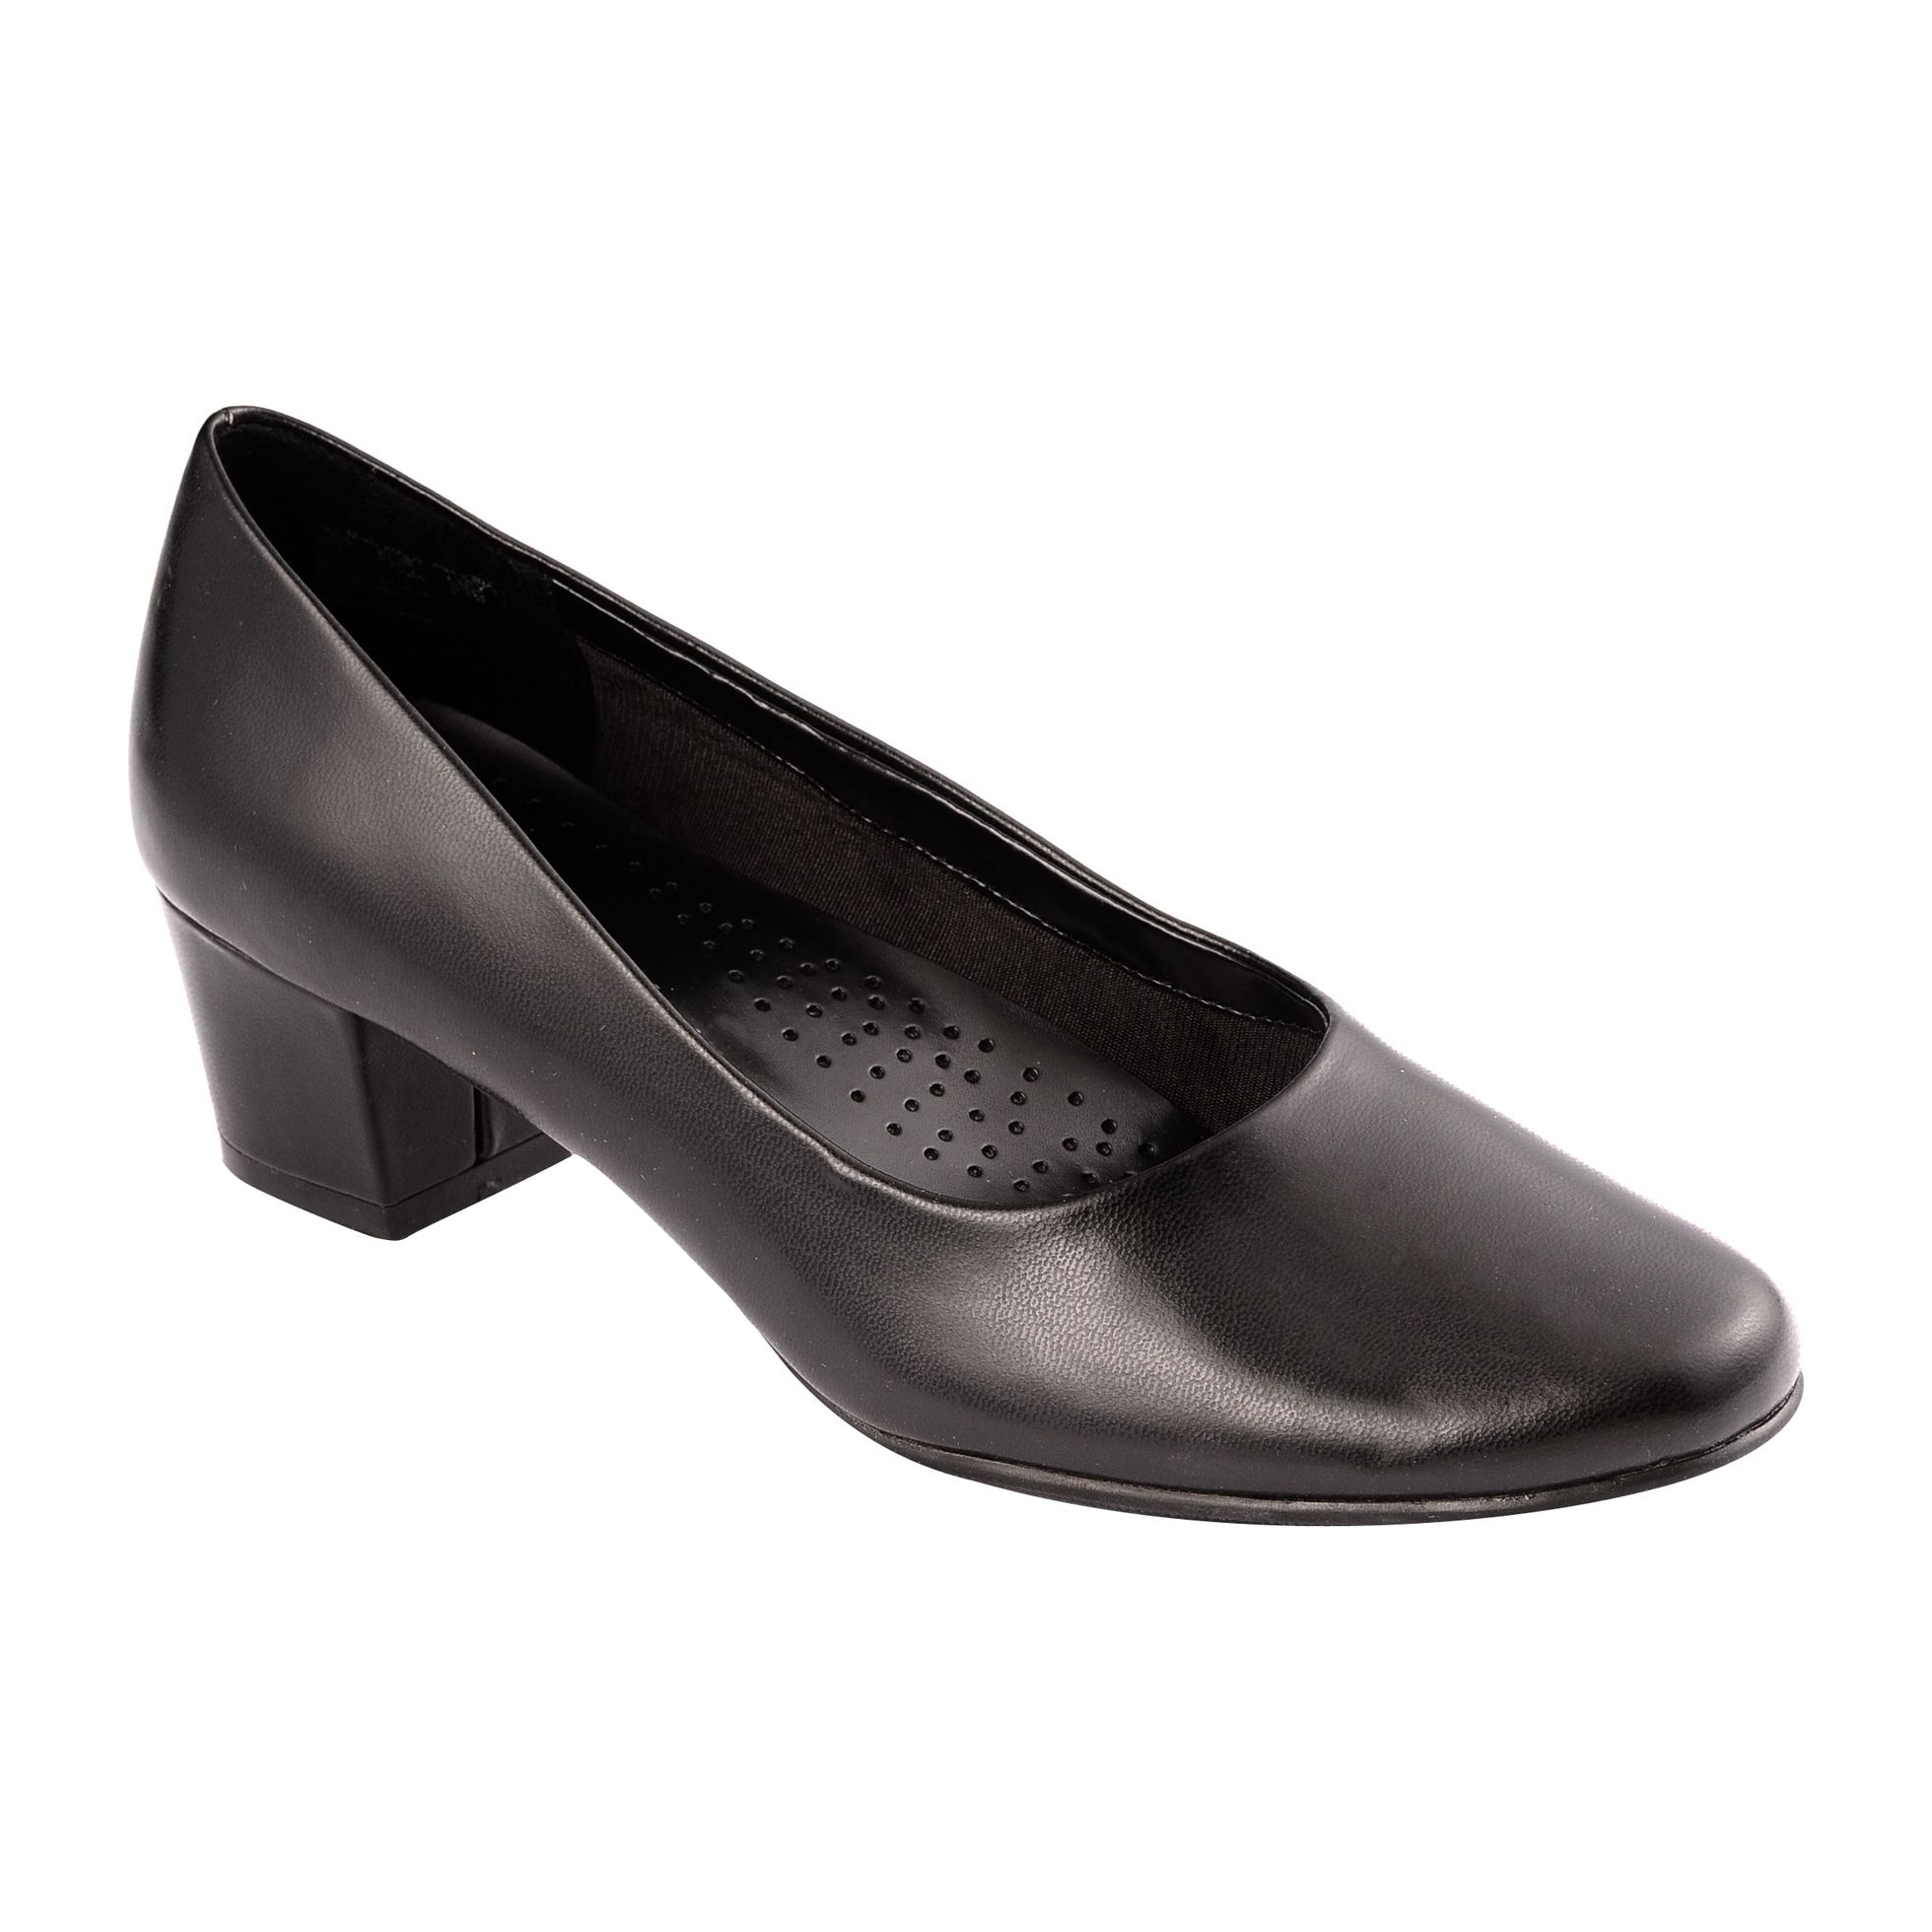 I Love Comfort Women's Dress Shoe Layla Wide Width - Black 7.5